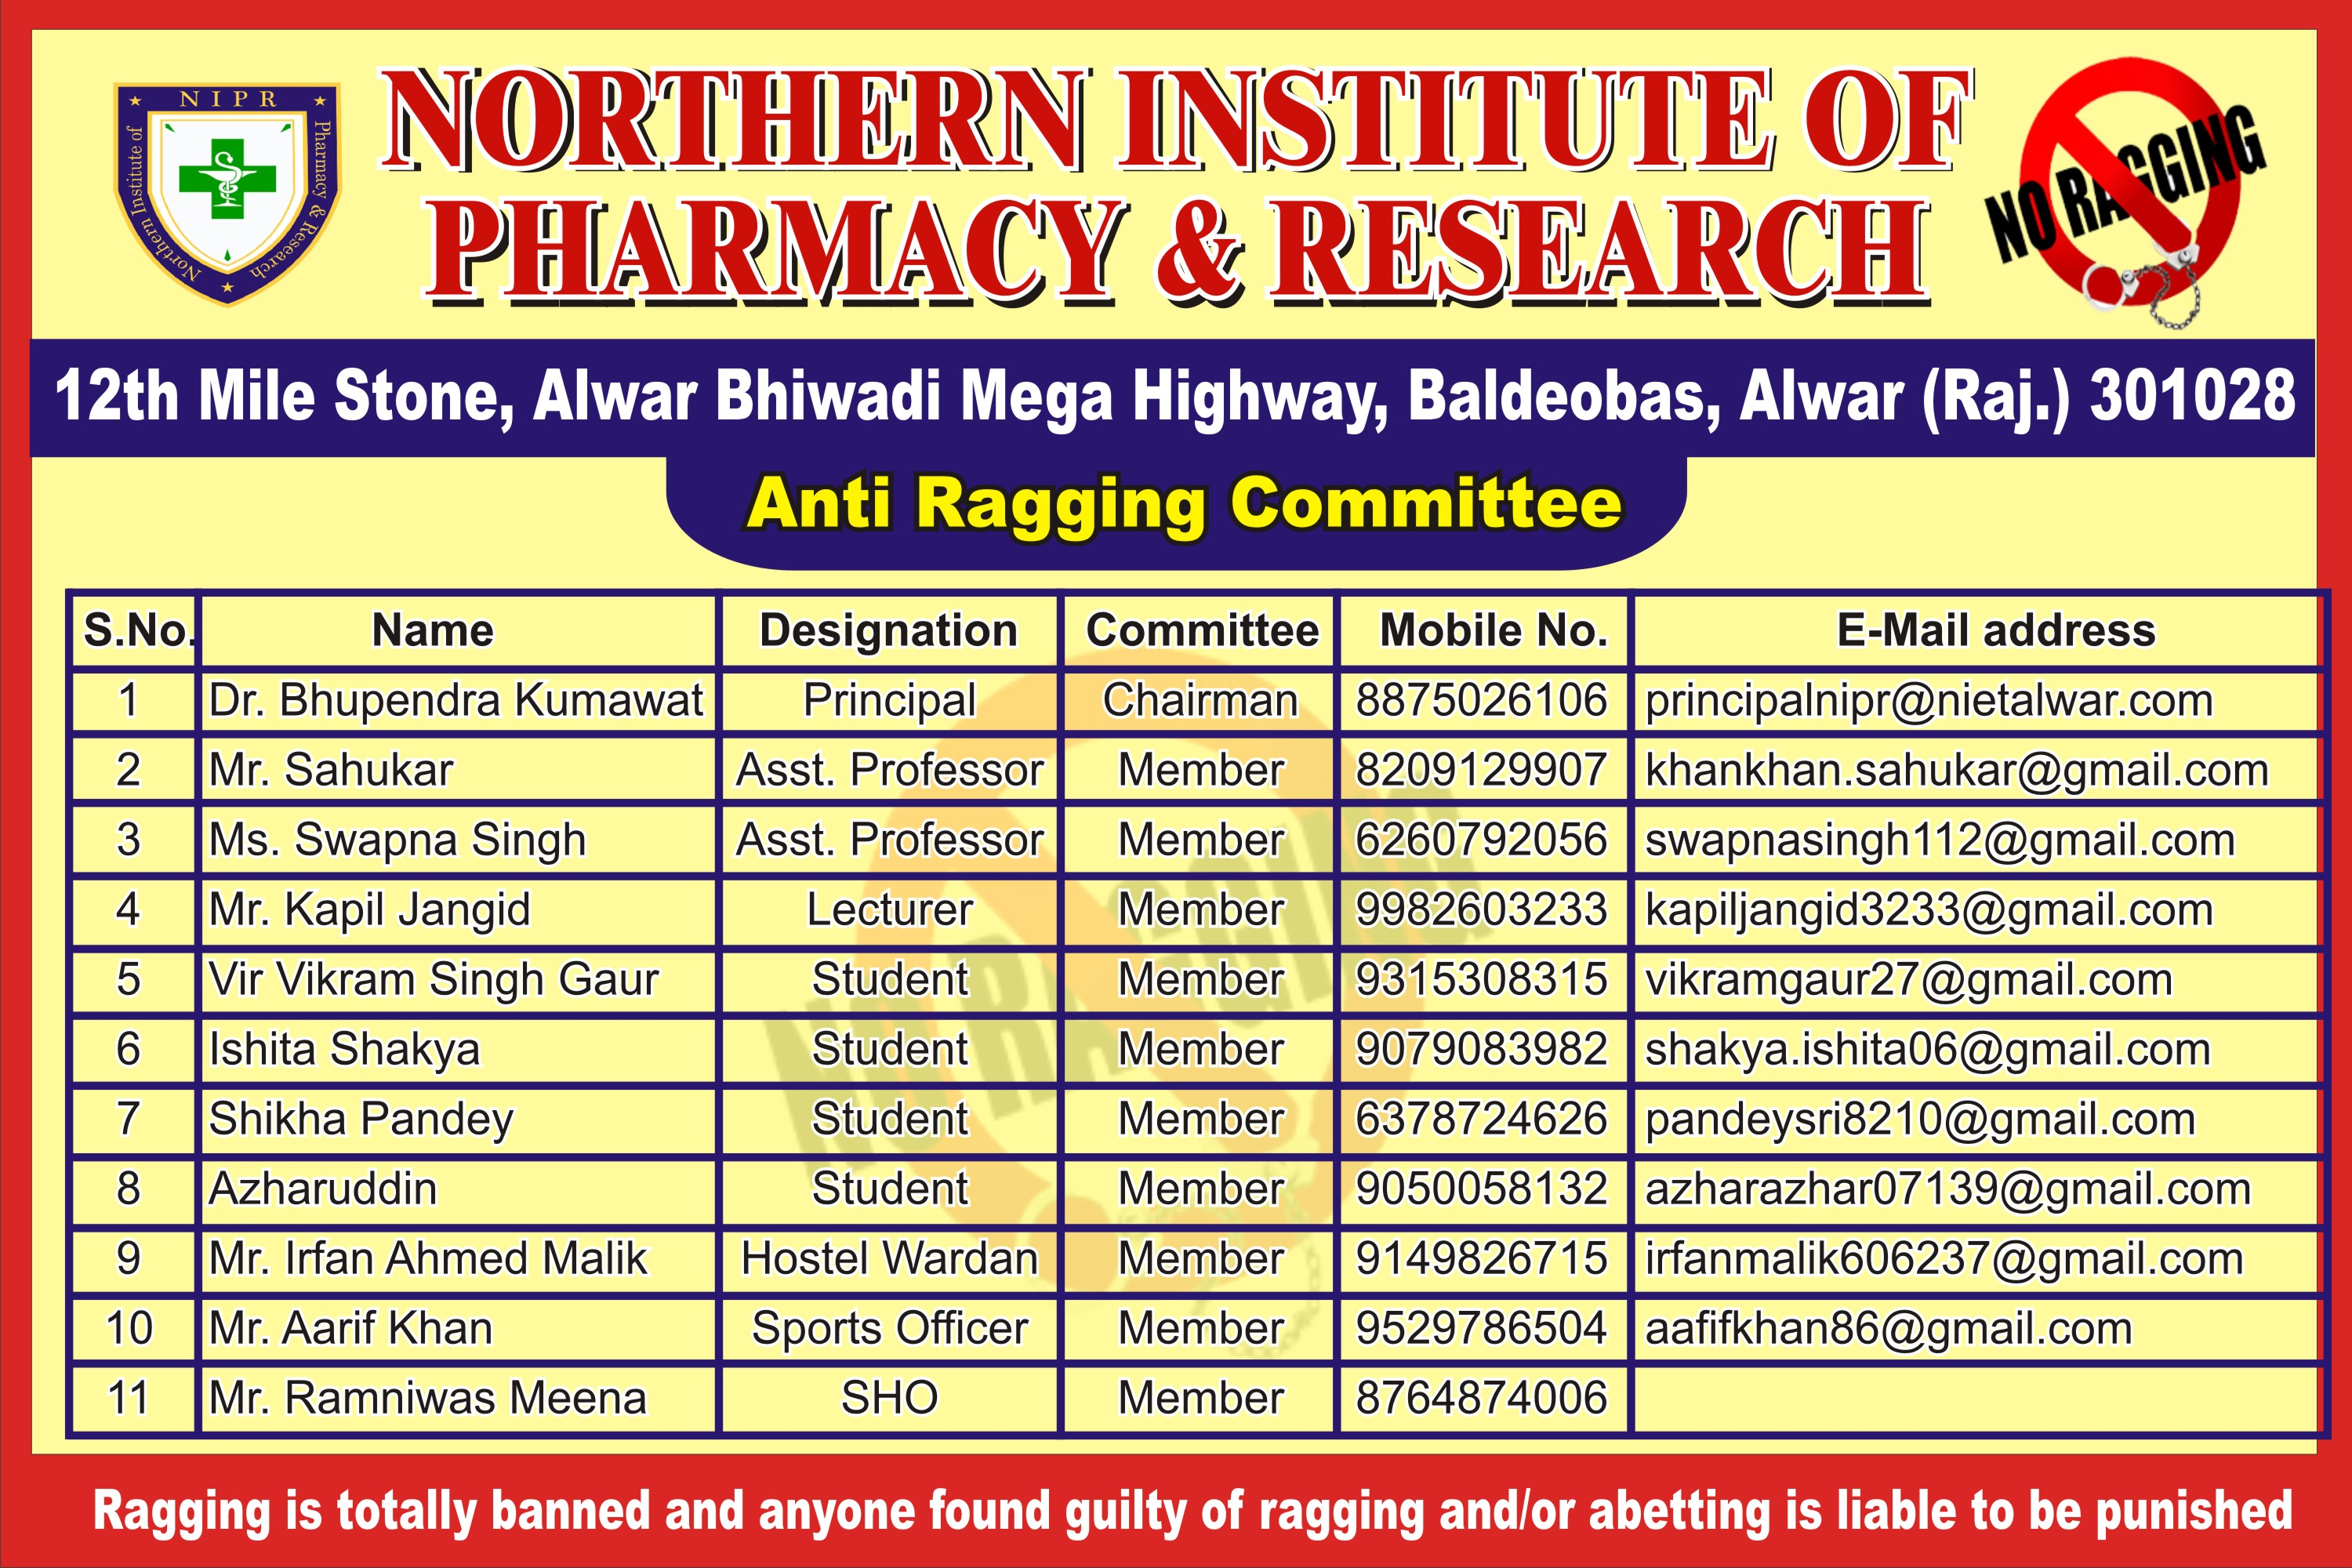 Northern Institute of Pharmacy & Research, Alwar